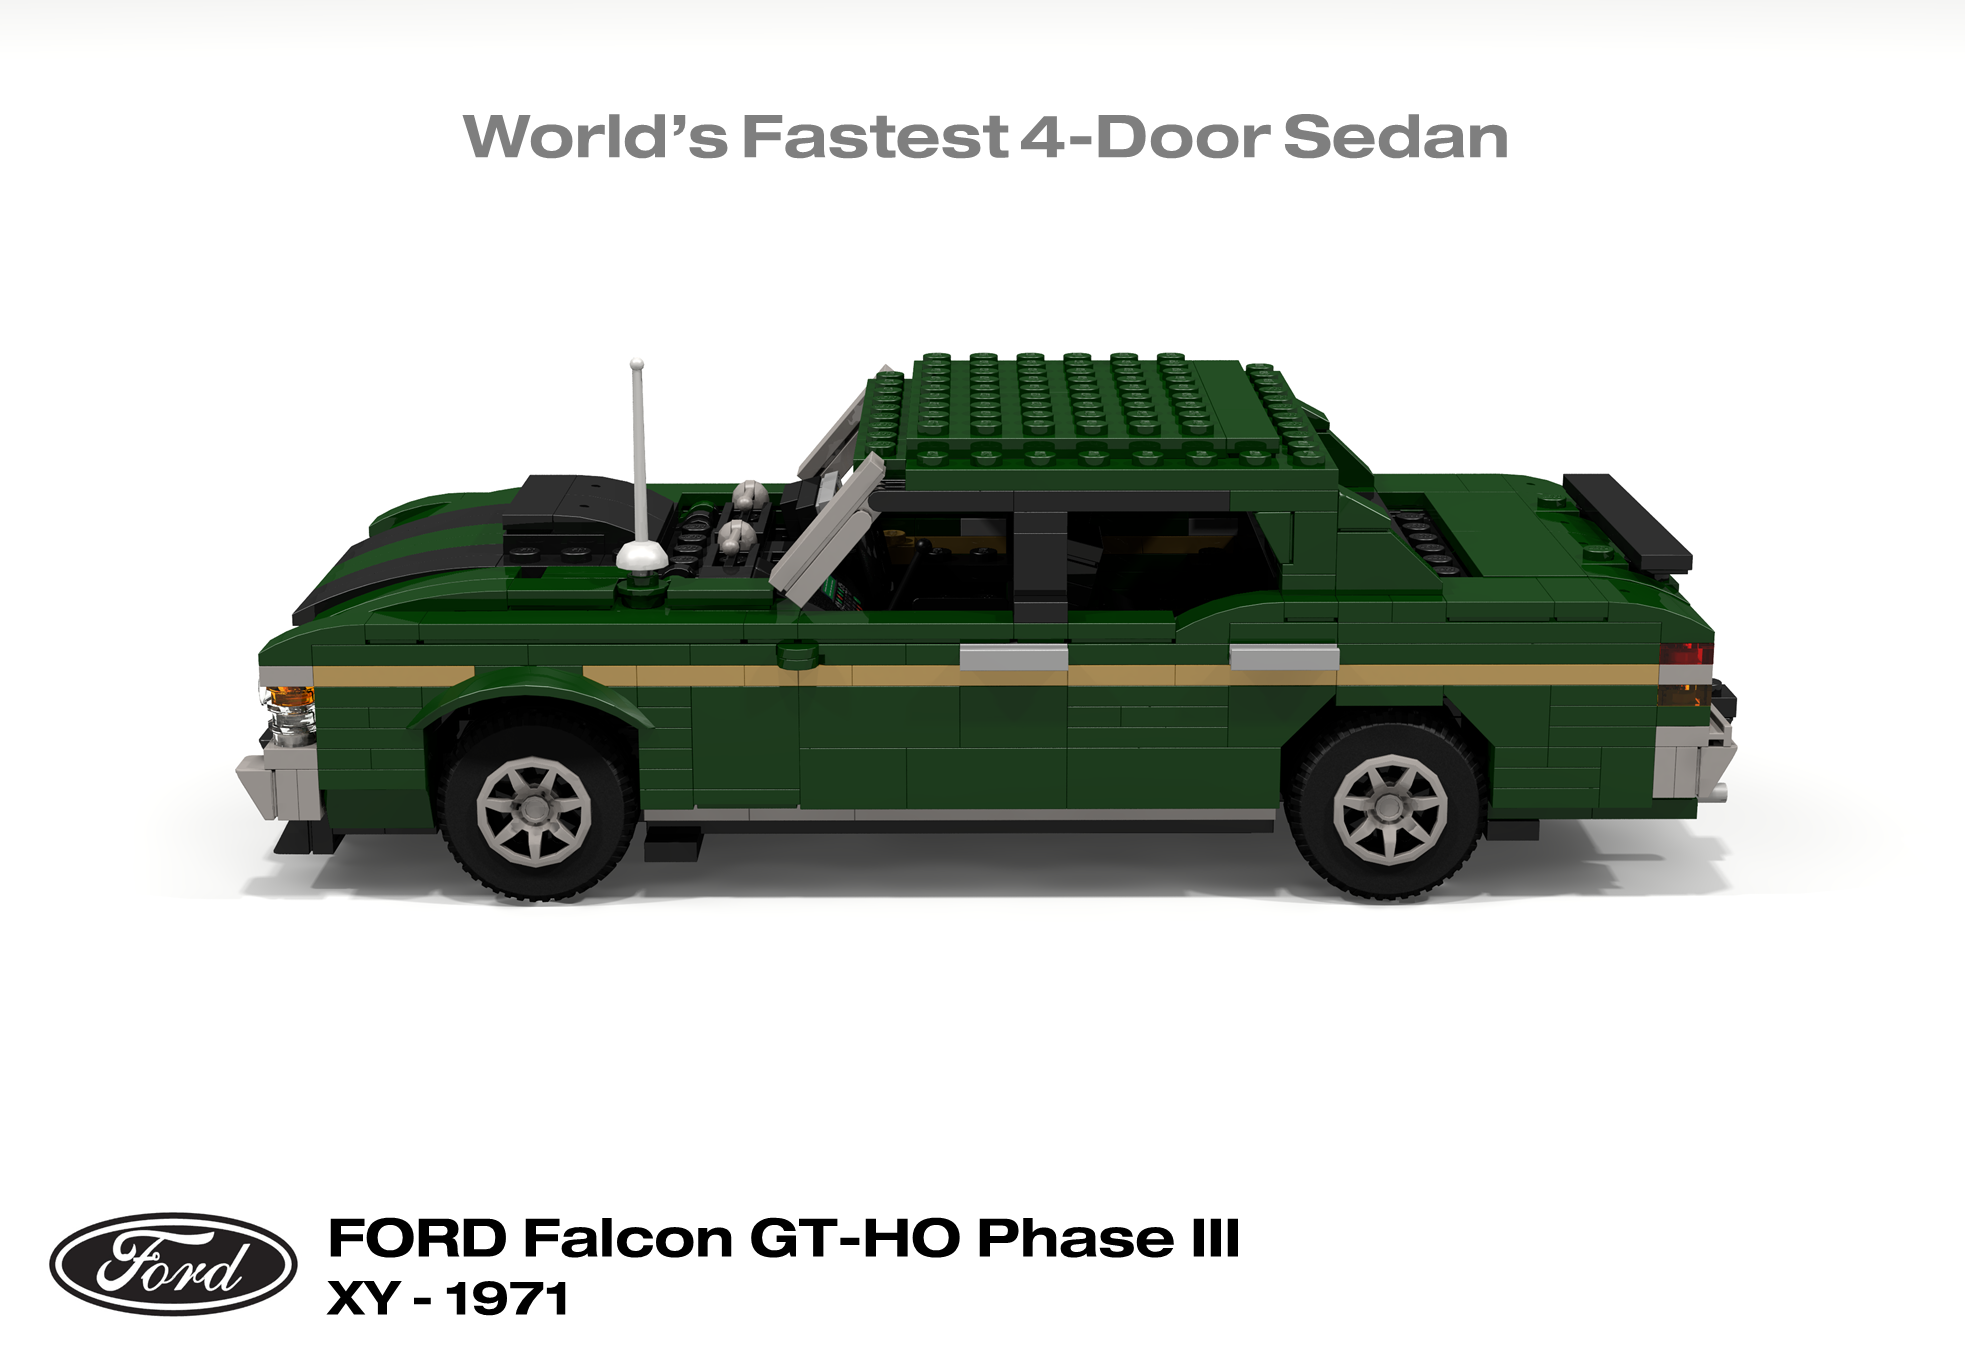 ford_falcon_xy_gt-ho_phase_iii_06.png